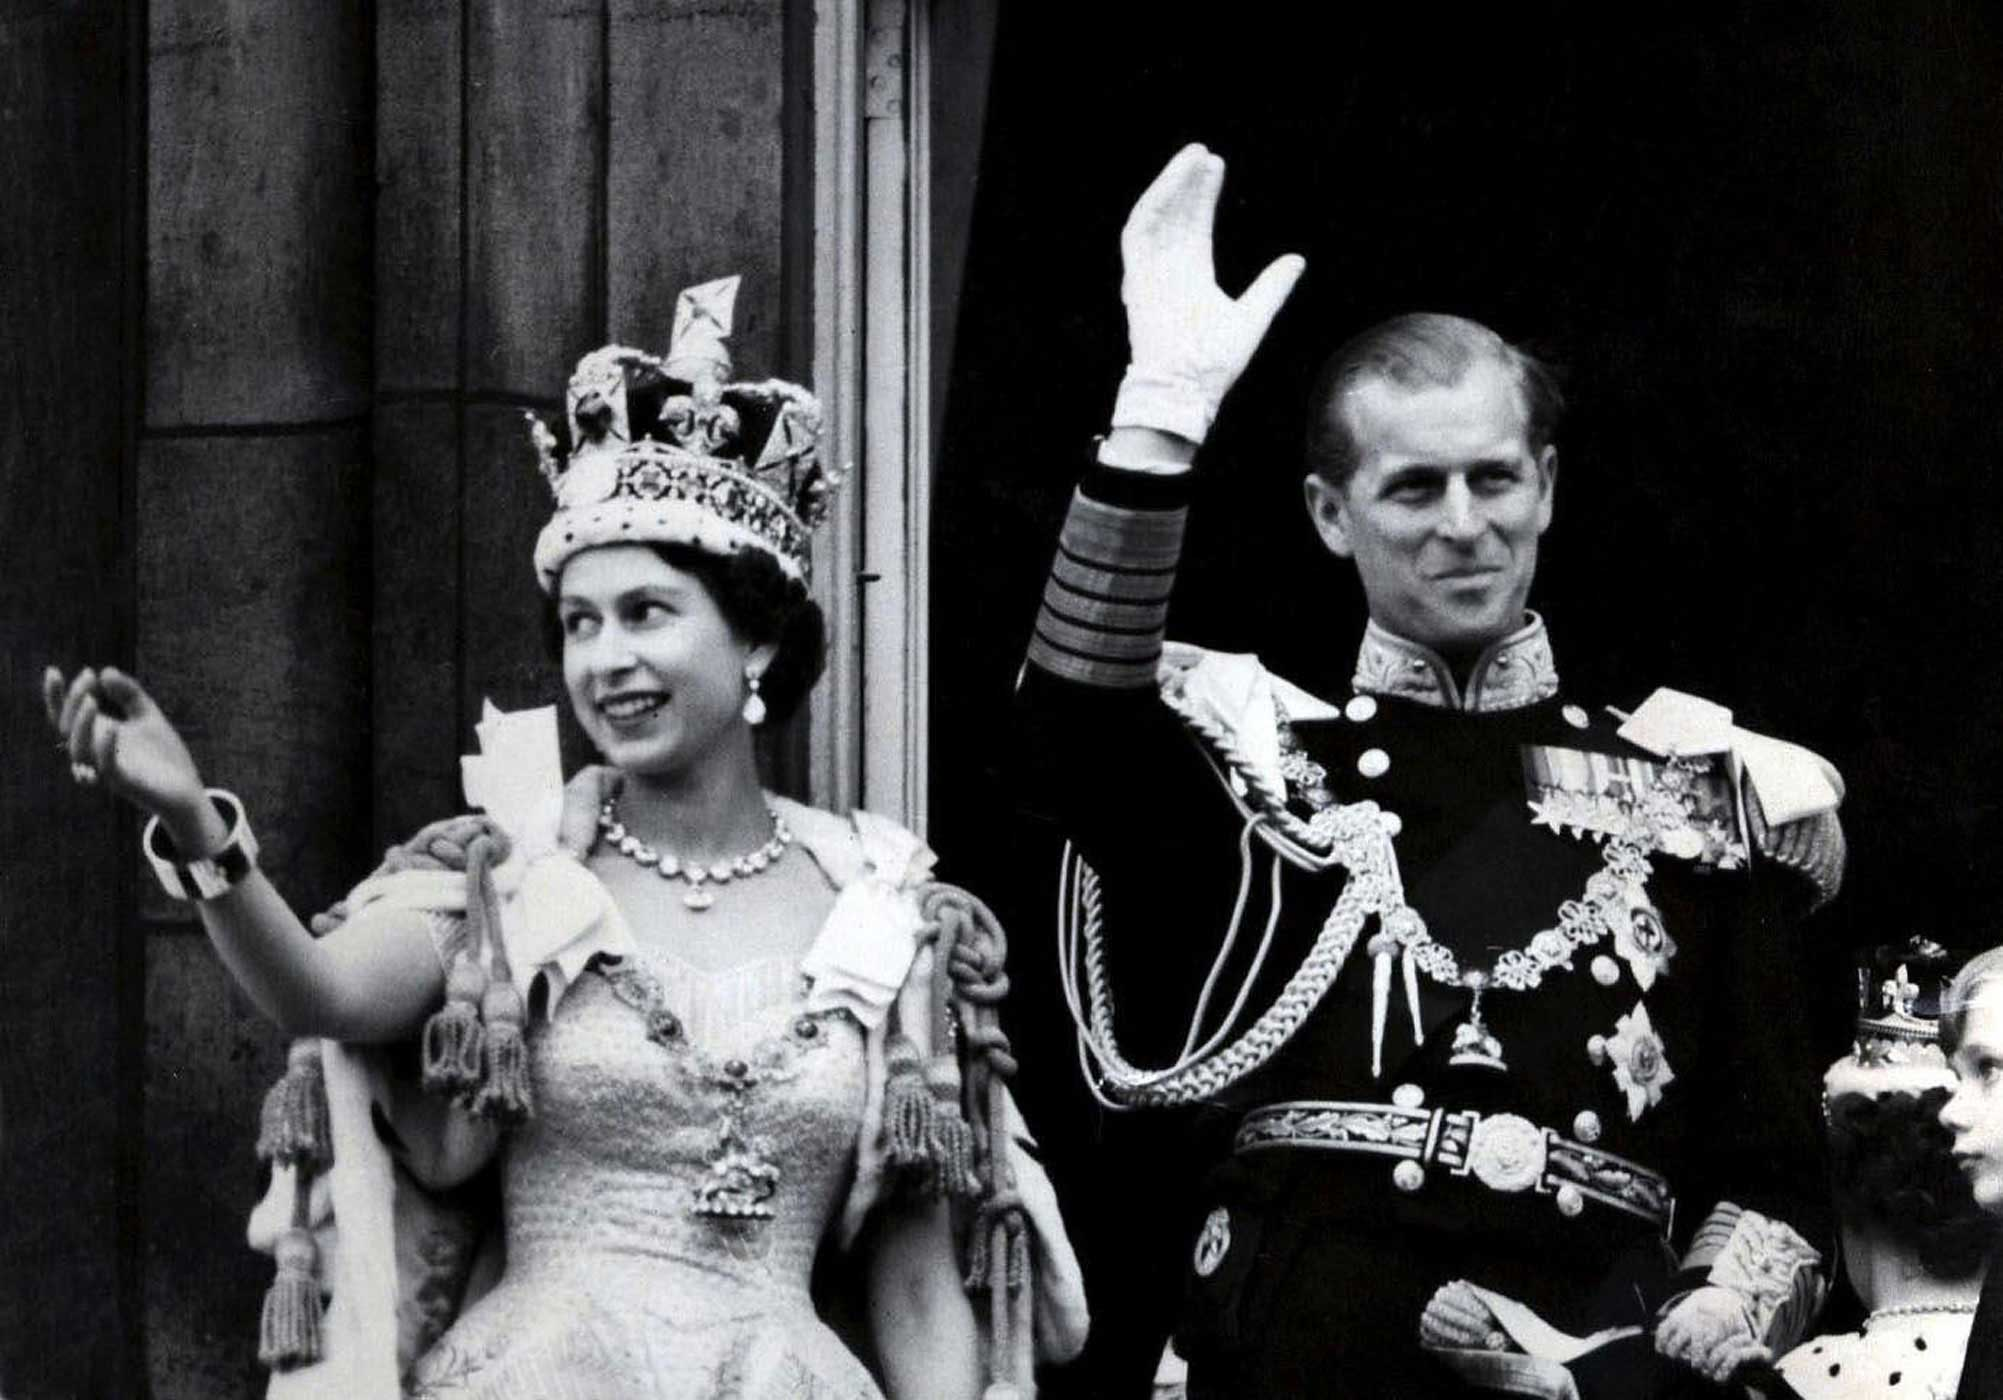 The newly named Queen Elizabeth II and the Duke of Edinburgh wave from a balcony to the crowds at the gates of Buckingham Palace after the coronation on June 2, 1953. Norman Hartnell designed Elizabeth's coronation gown; she had specifically requested that it be embroidered with the national flowers of each Commonwealth country.